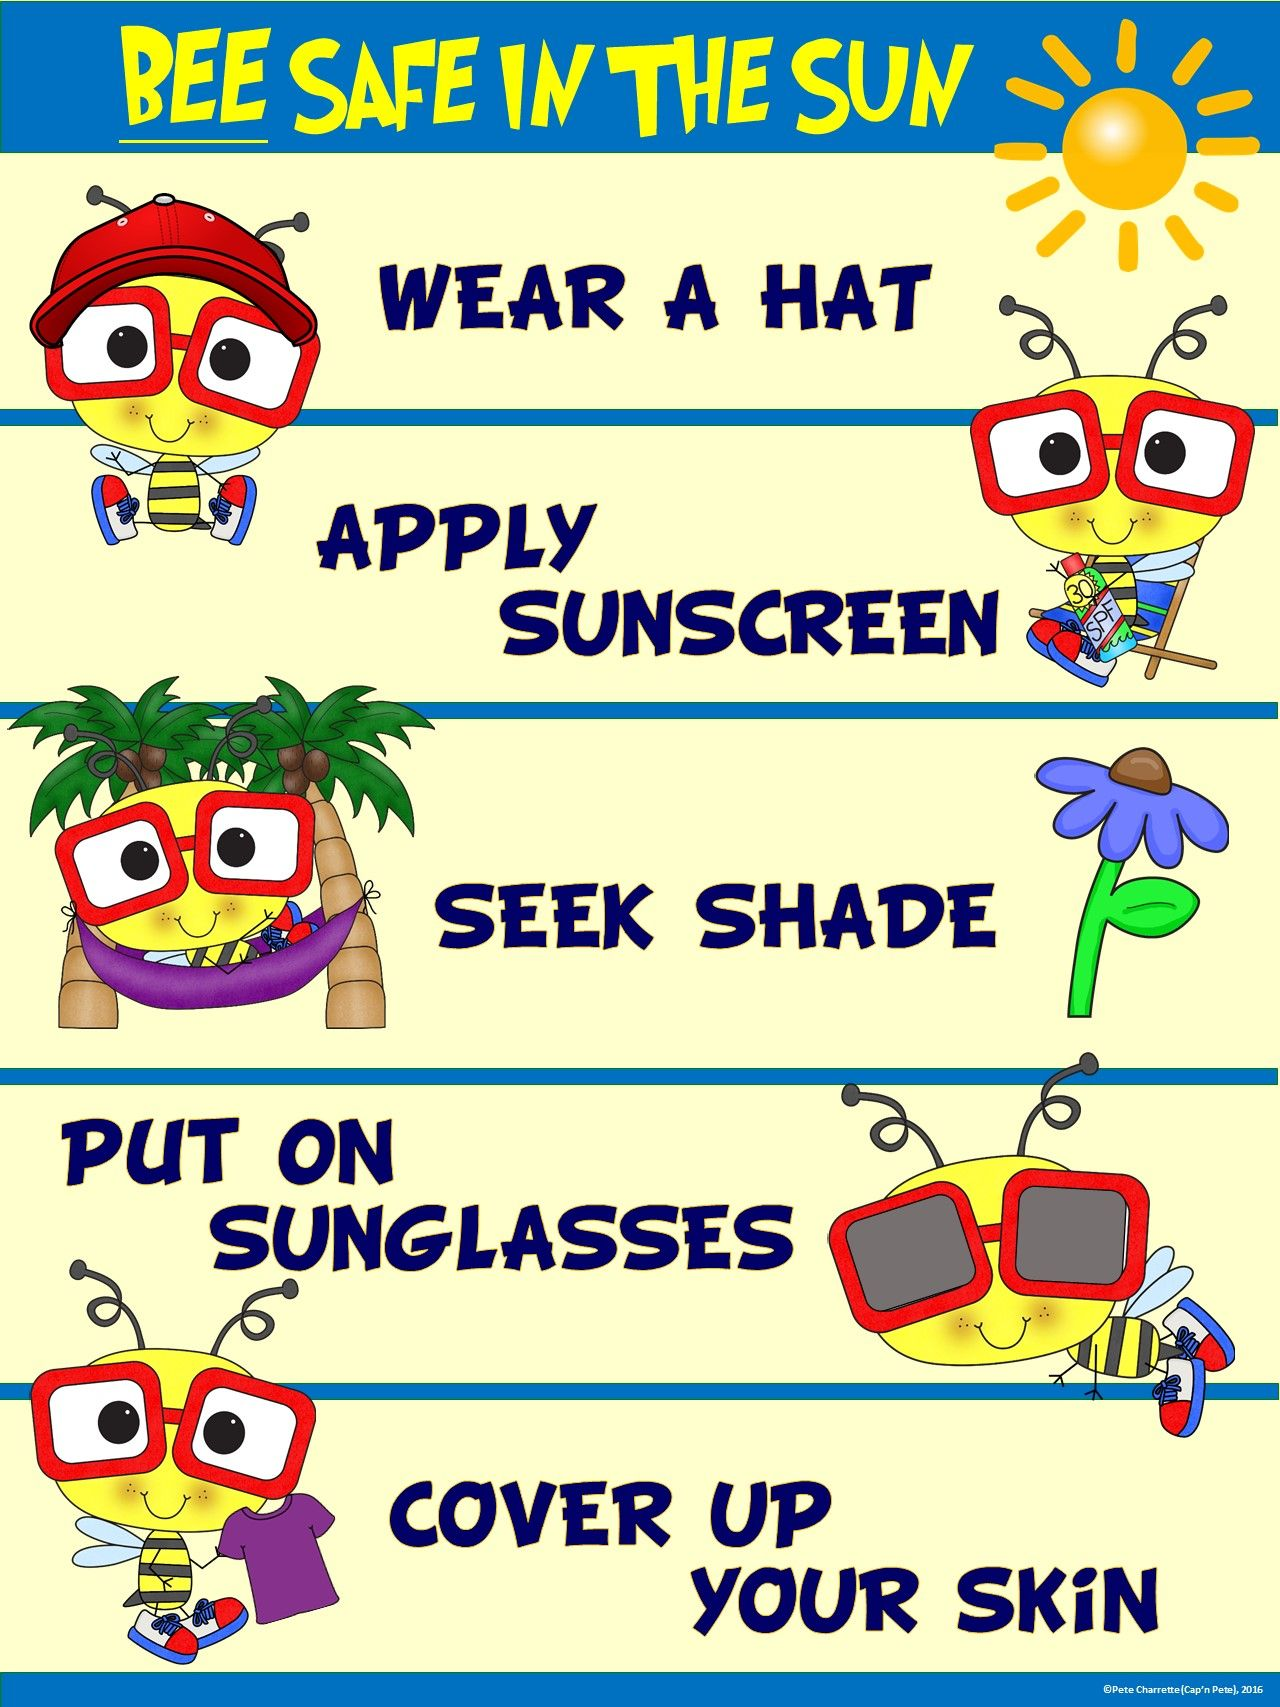 I Chose This Image Because It Tells Us What To Wear In Order To Be Safe And Have A Good Time At The Beach The Bene Sun Safety Activities Bee Safe [ 1707 x 1280 Pixel ]